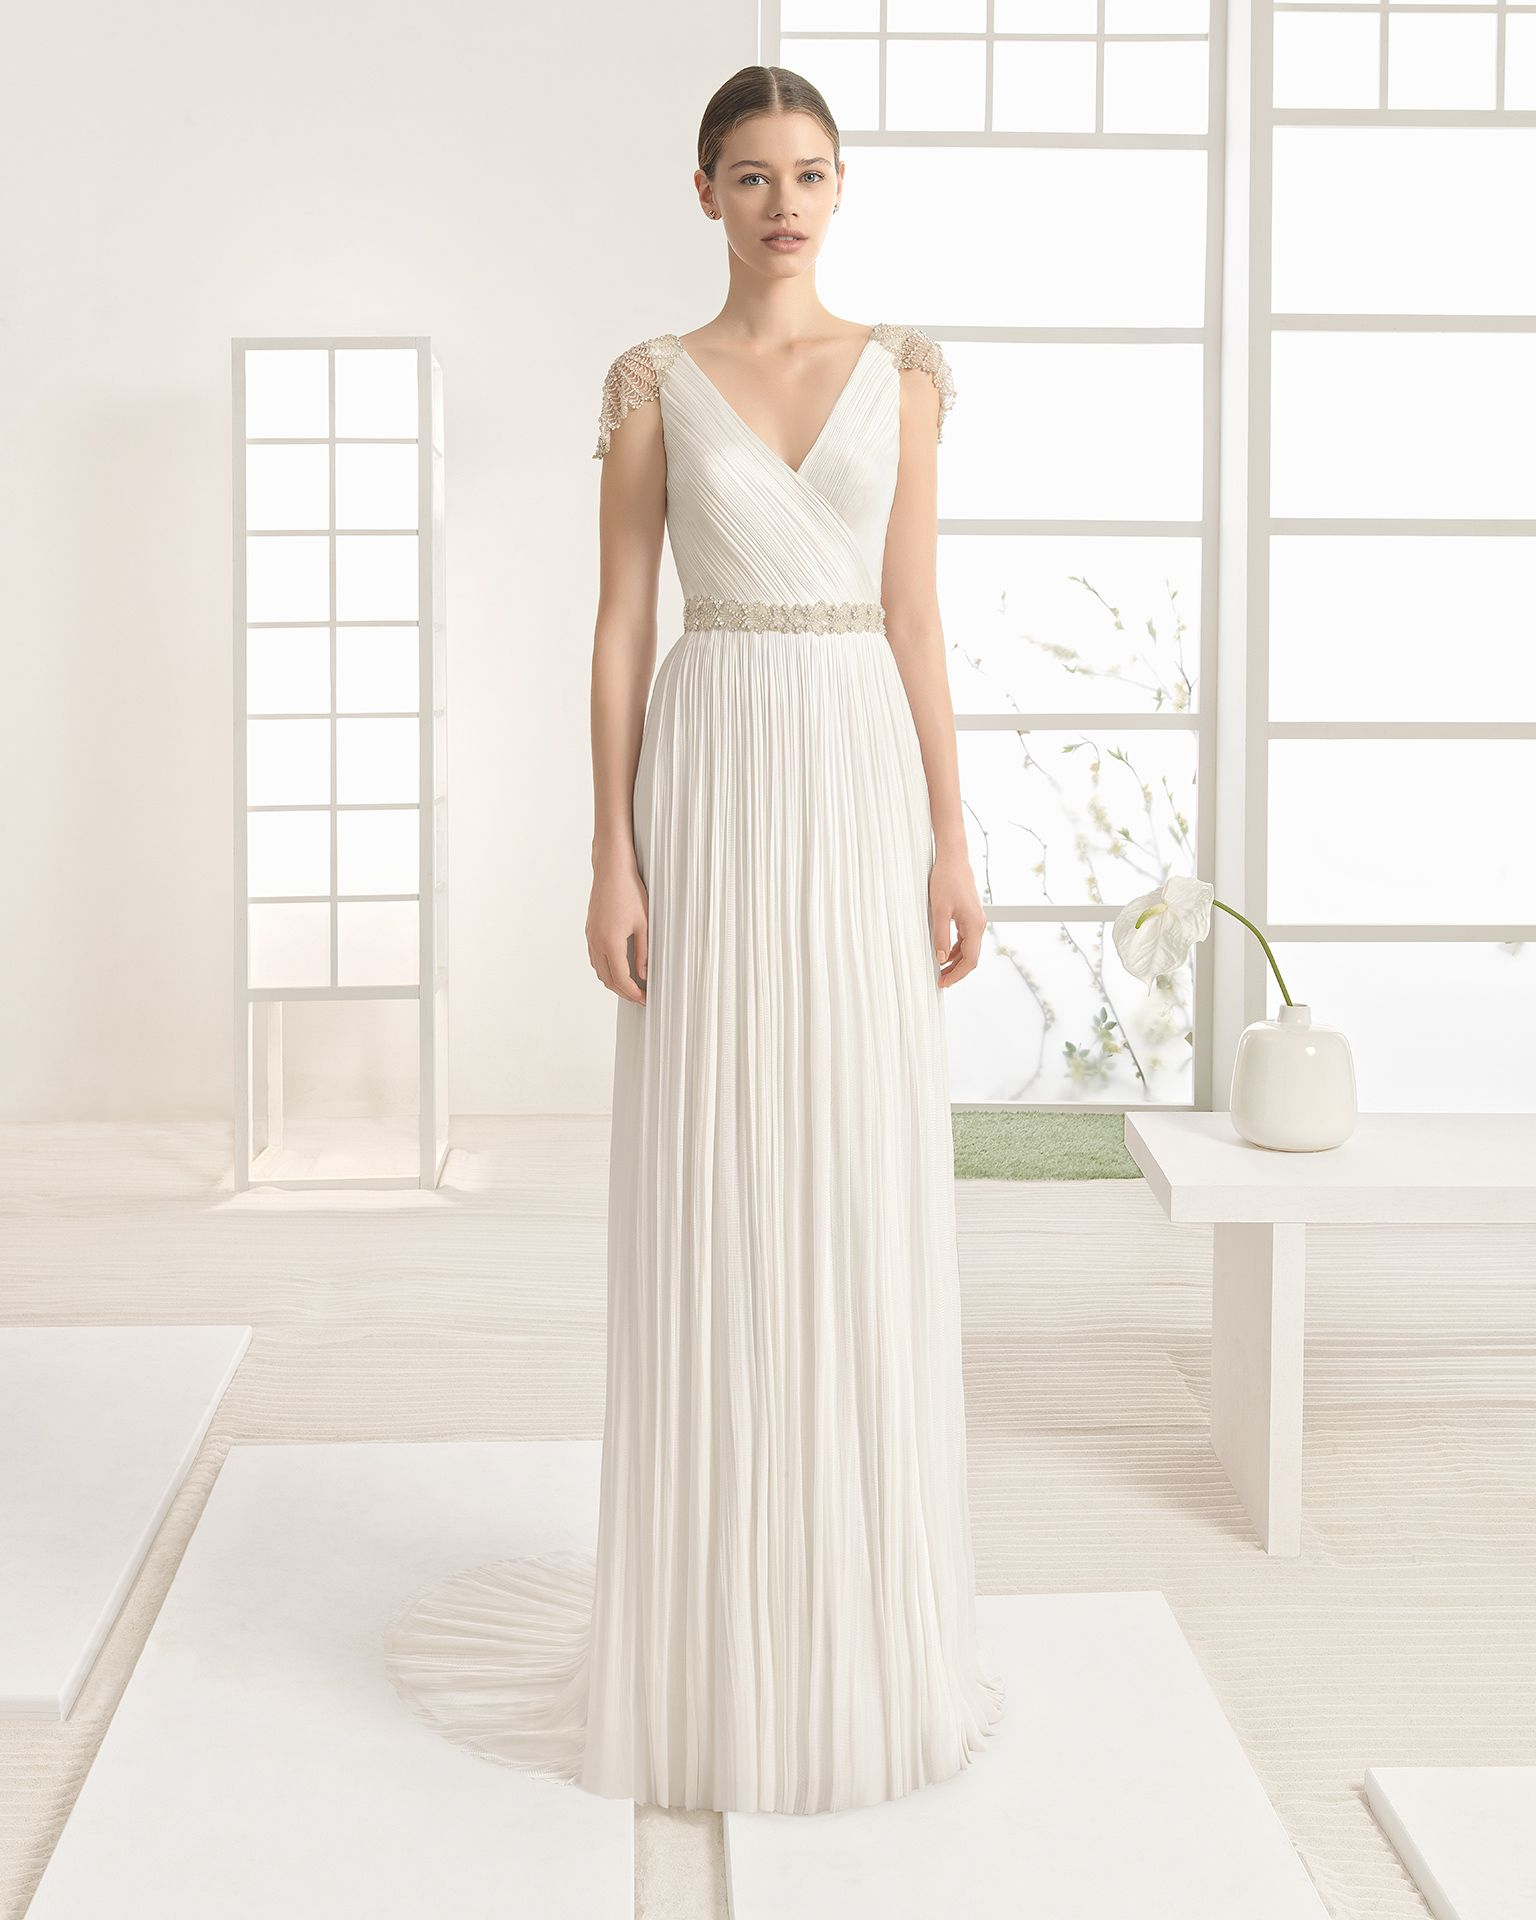 Modern dress des moines - Schaffer S In Des Moines Iowa Carries Rosa Clara Style Walram Lightweight Silk Muslin Dress With V Neck And Jewelled Back With Frosted Beading